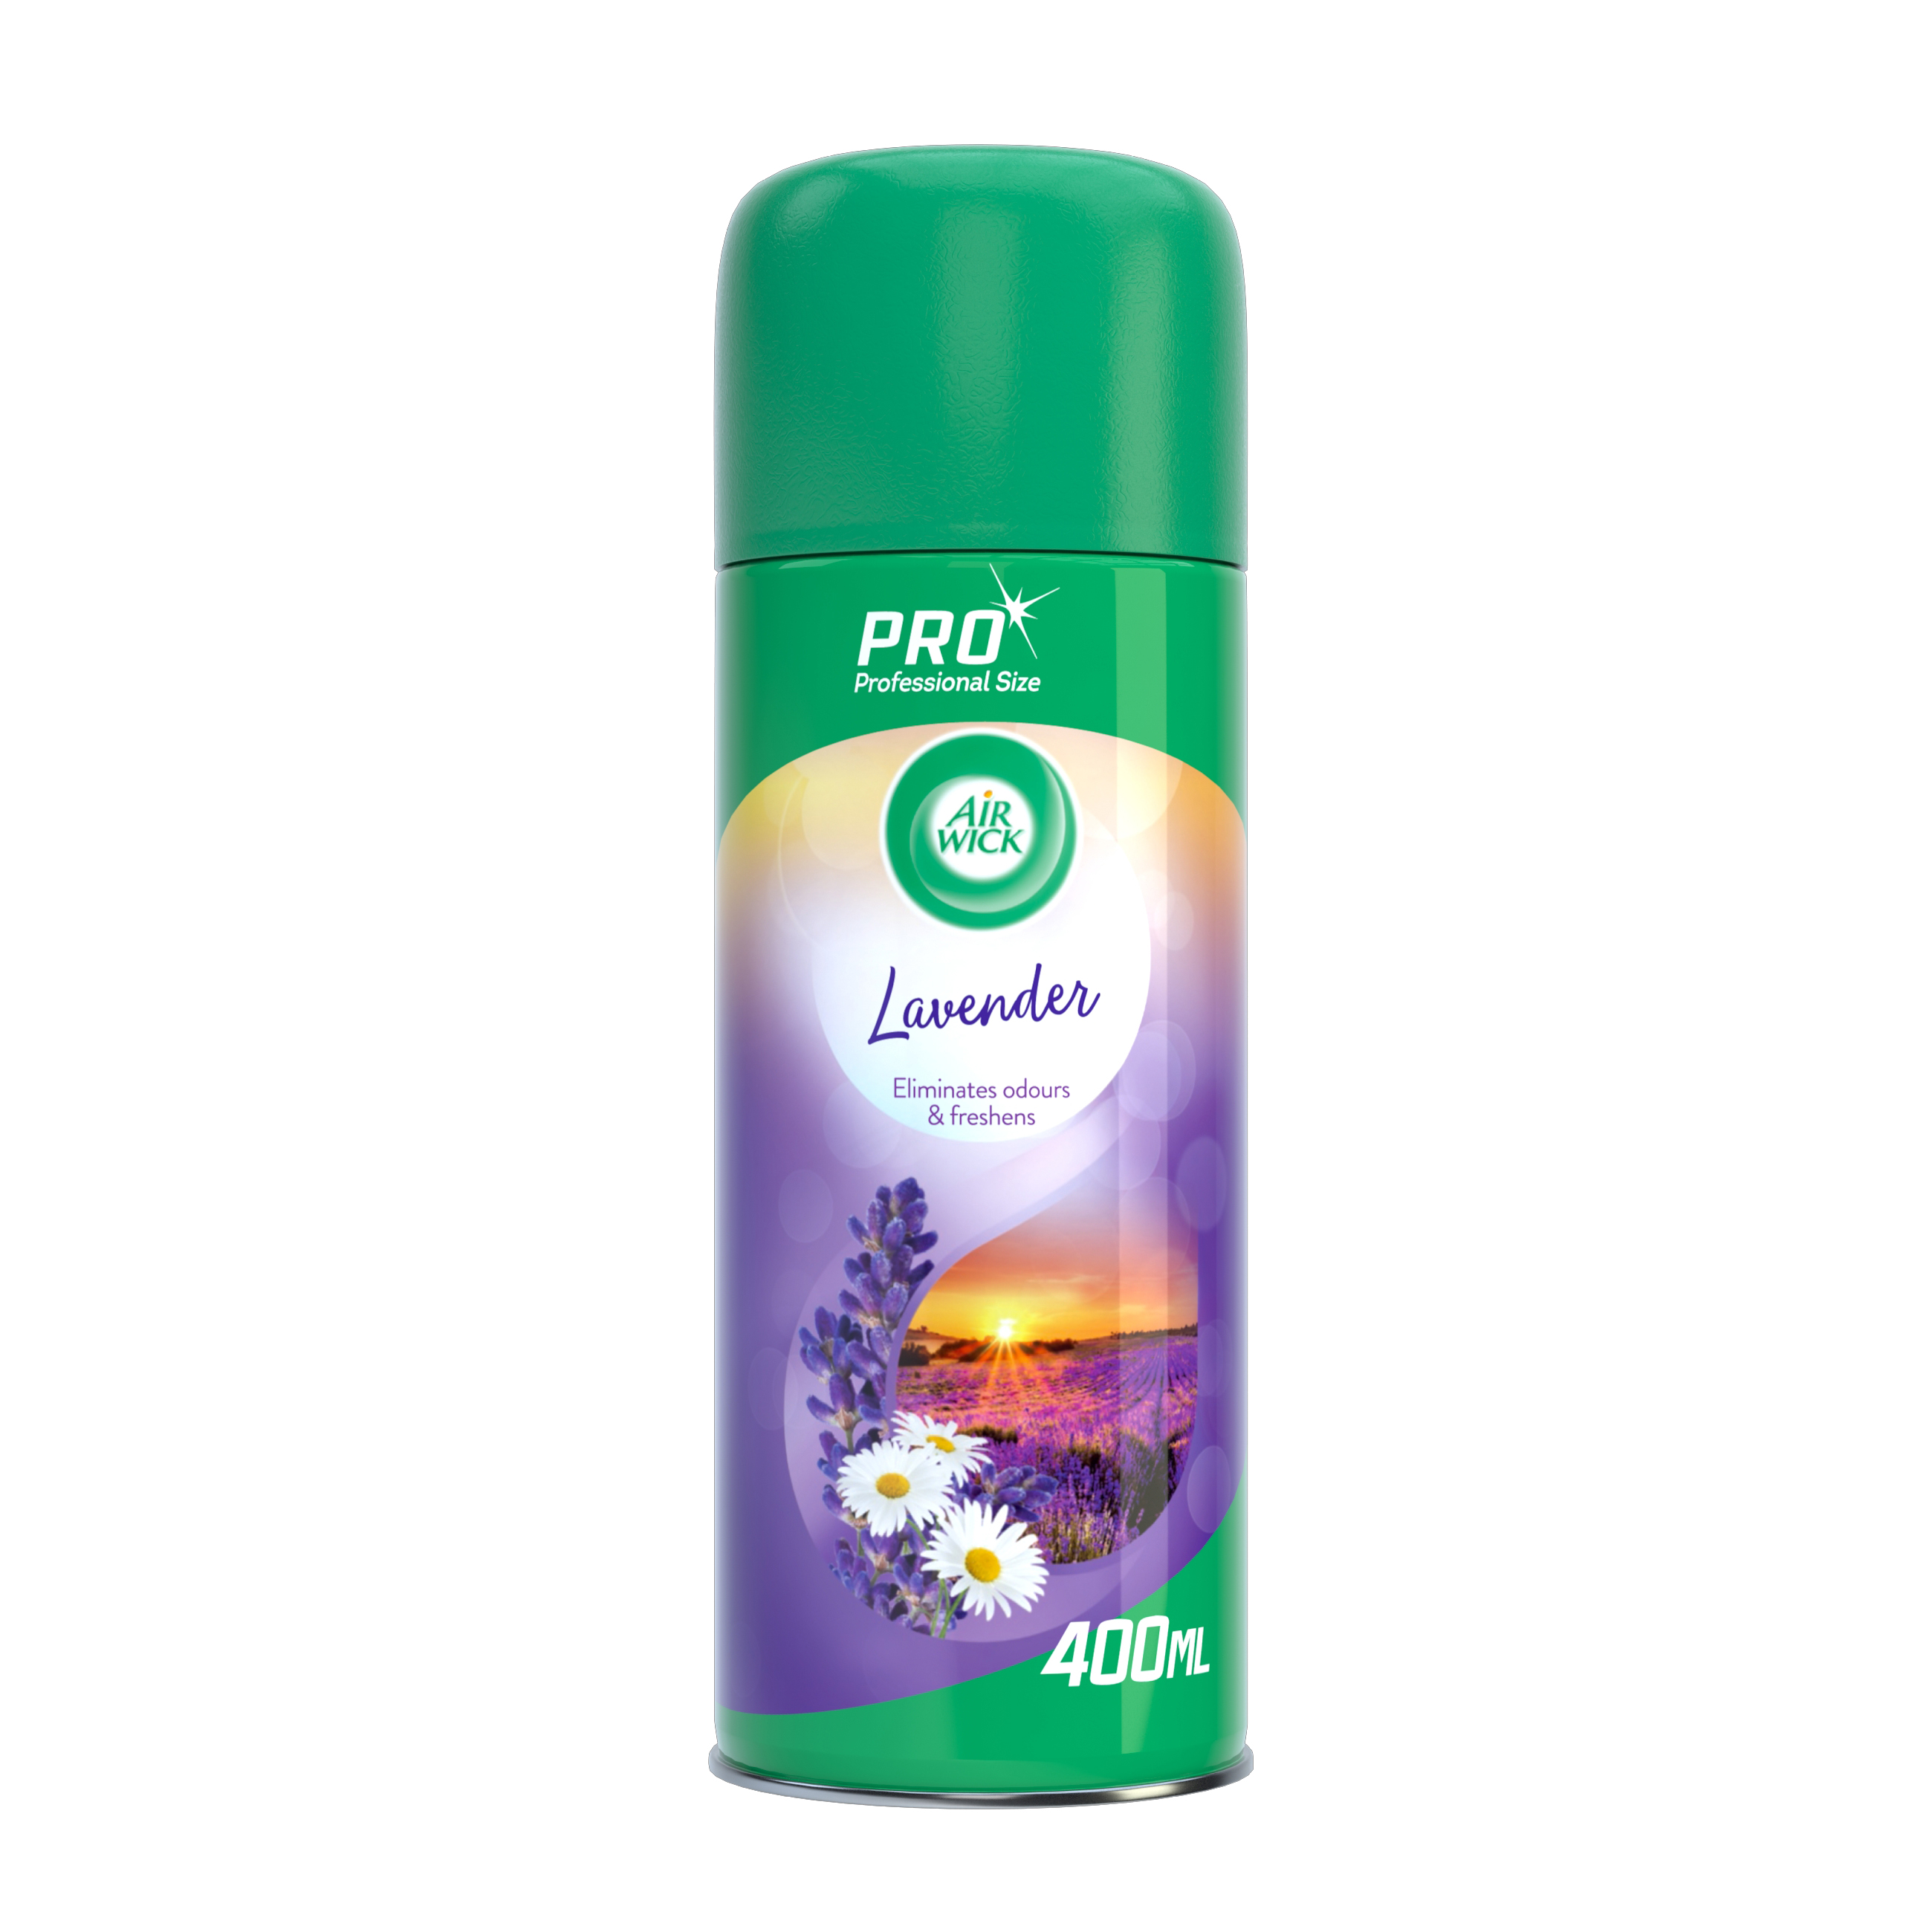 Image for Air Wick Air Freshener Lavender 400ml Ref RB500632